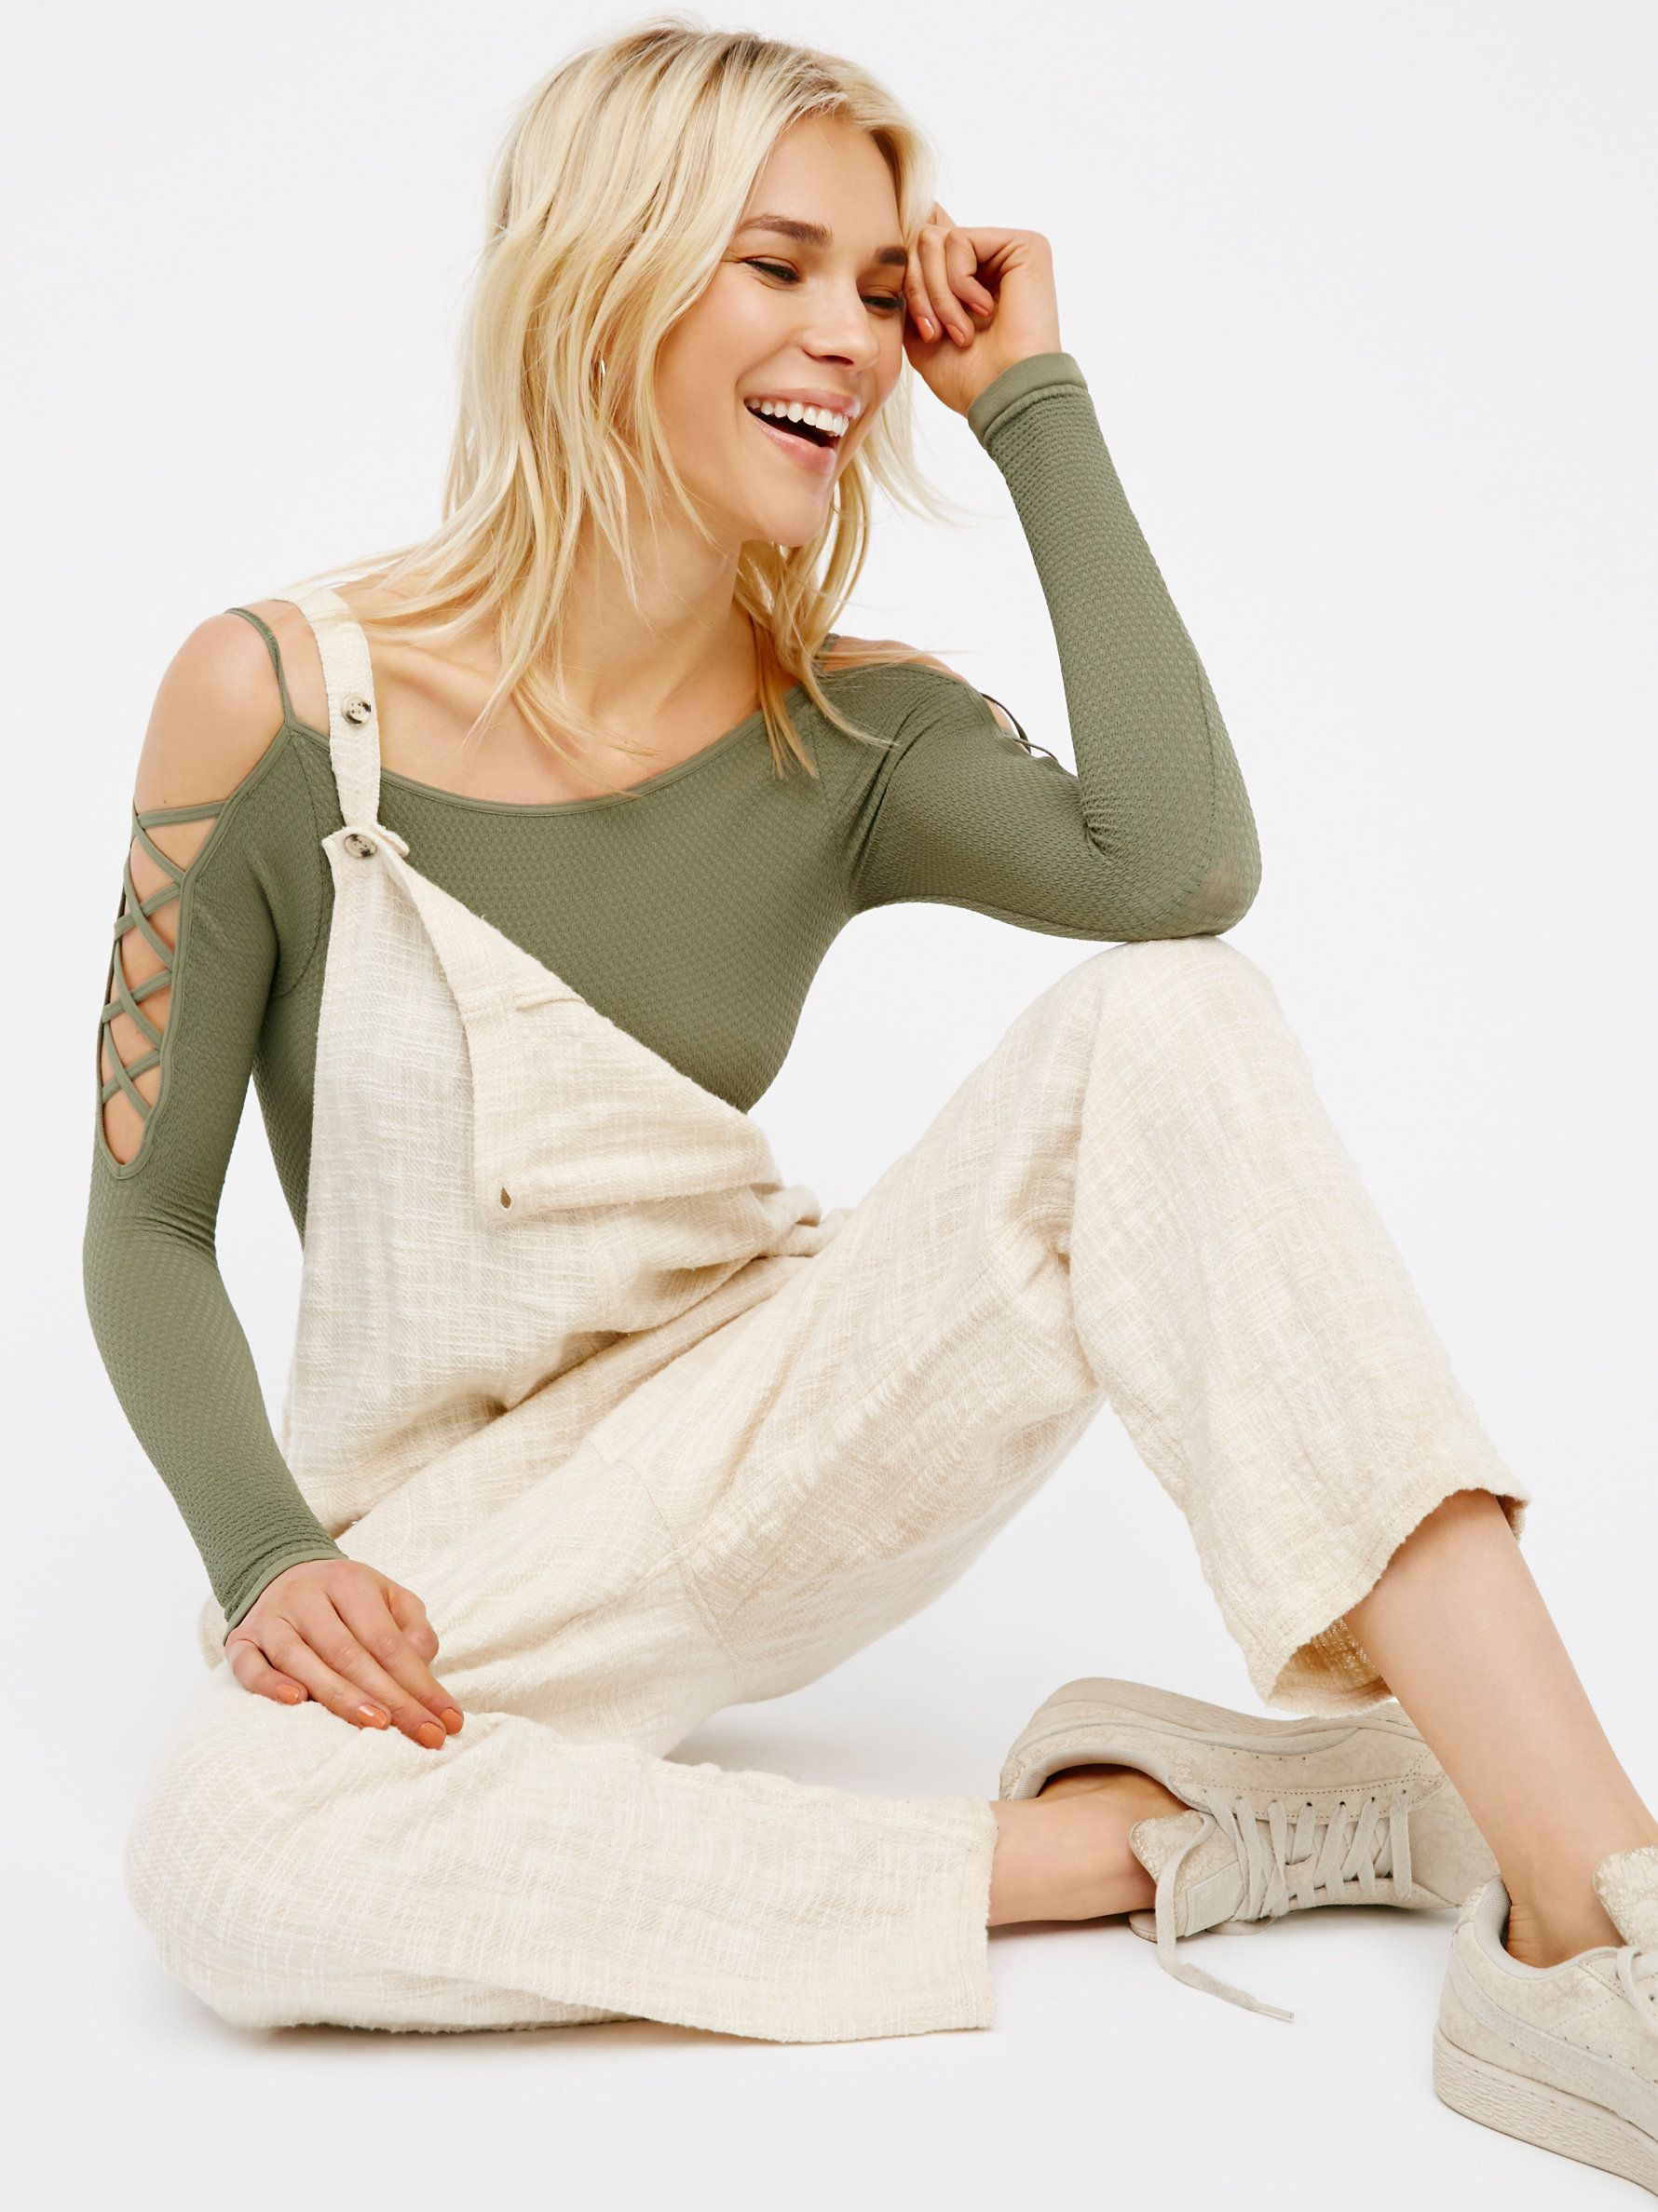 Lace Up Sides Layering Top | American made long sleeve layering top featuring an open shoulder design with crisscross lace-up details for an ultra cool, edgy feel. Super stretchy fabrication.